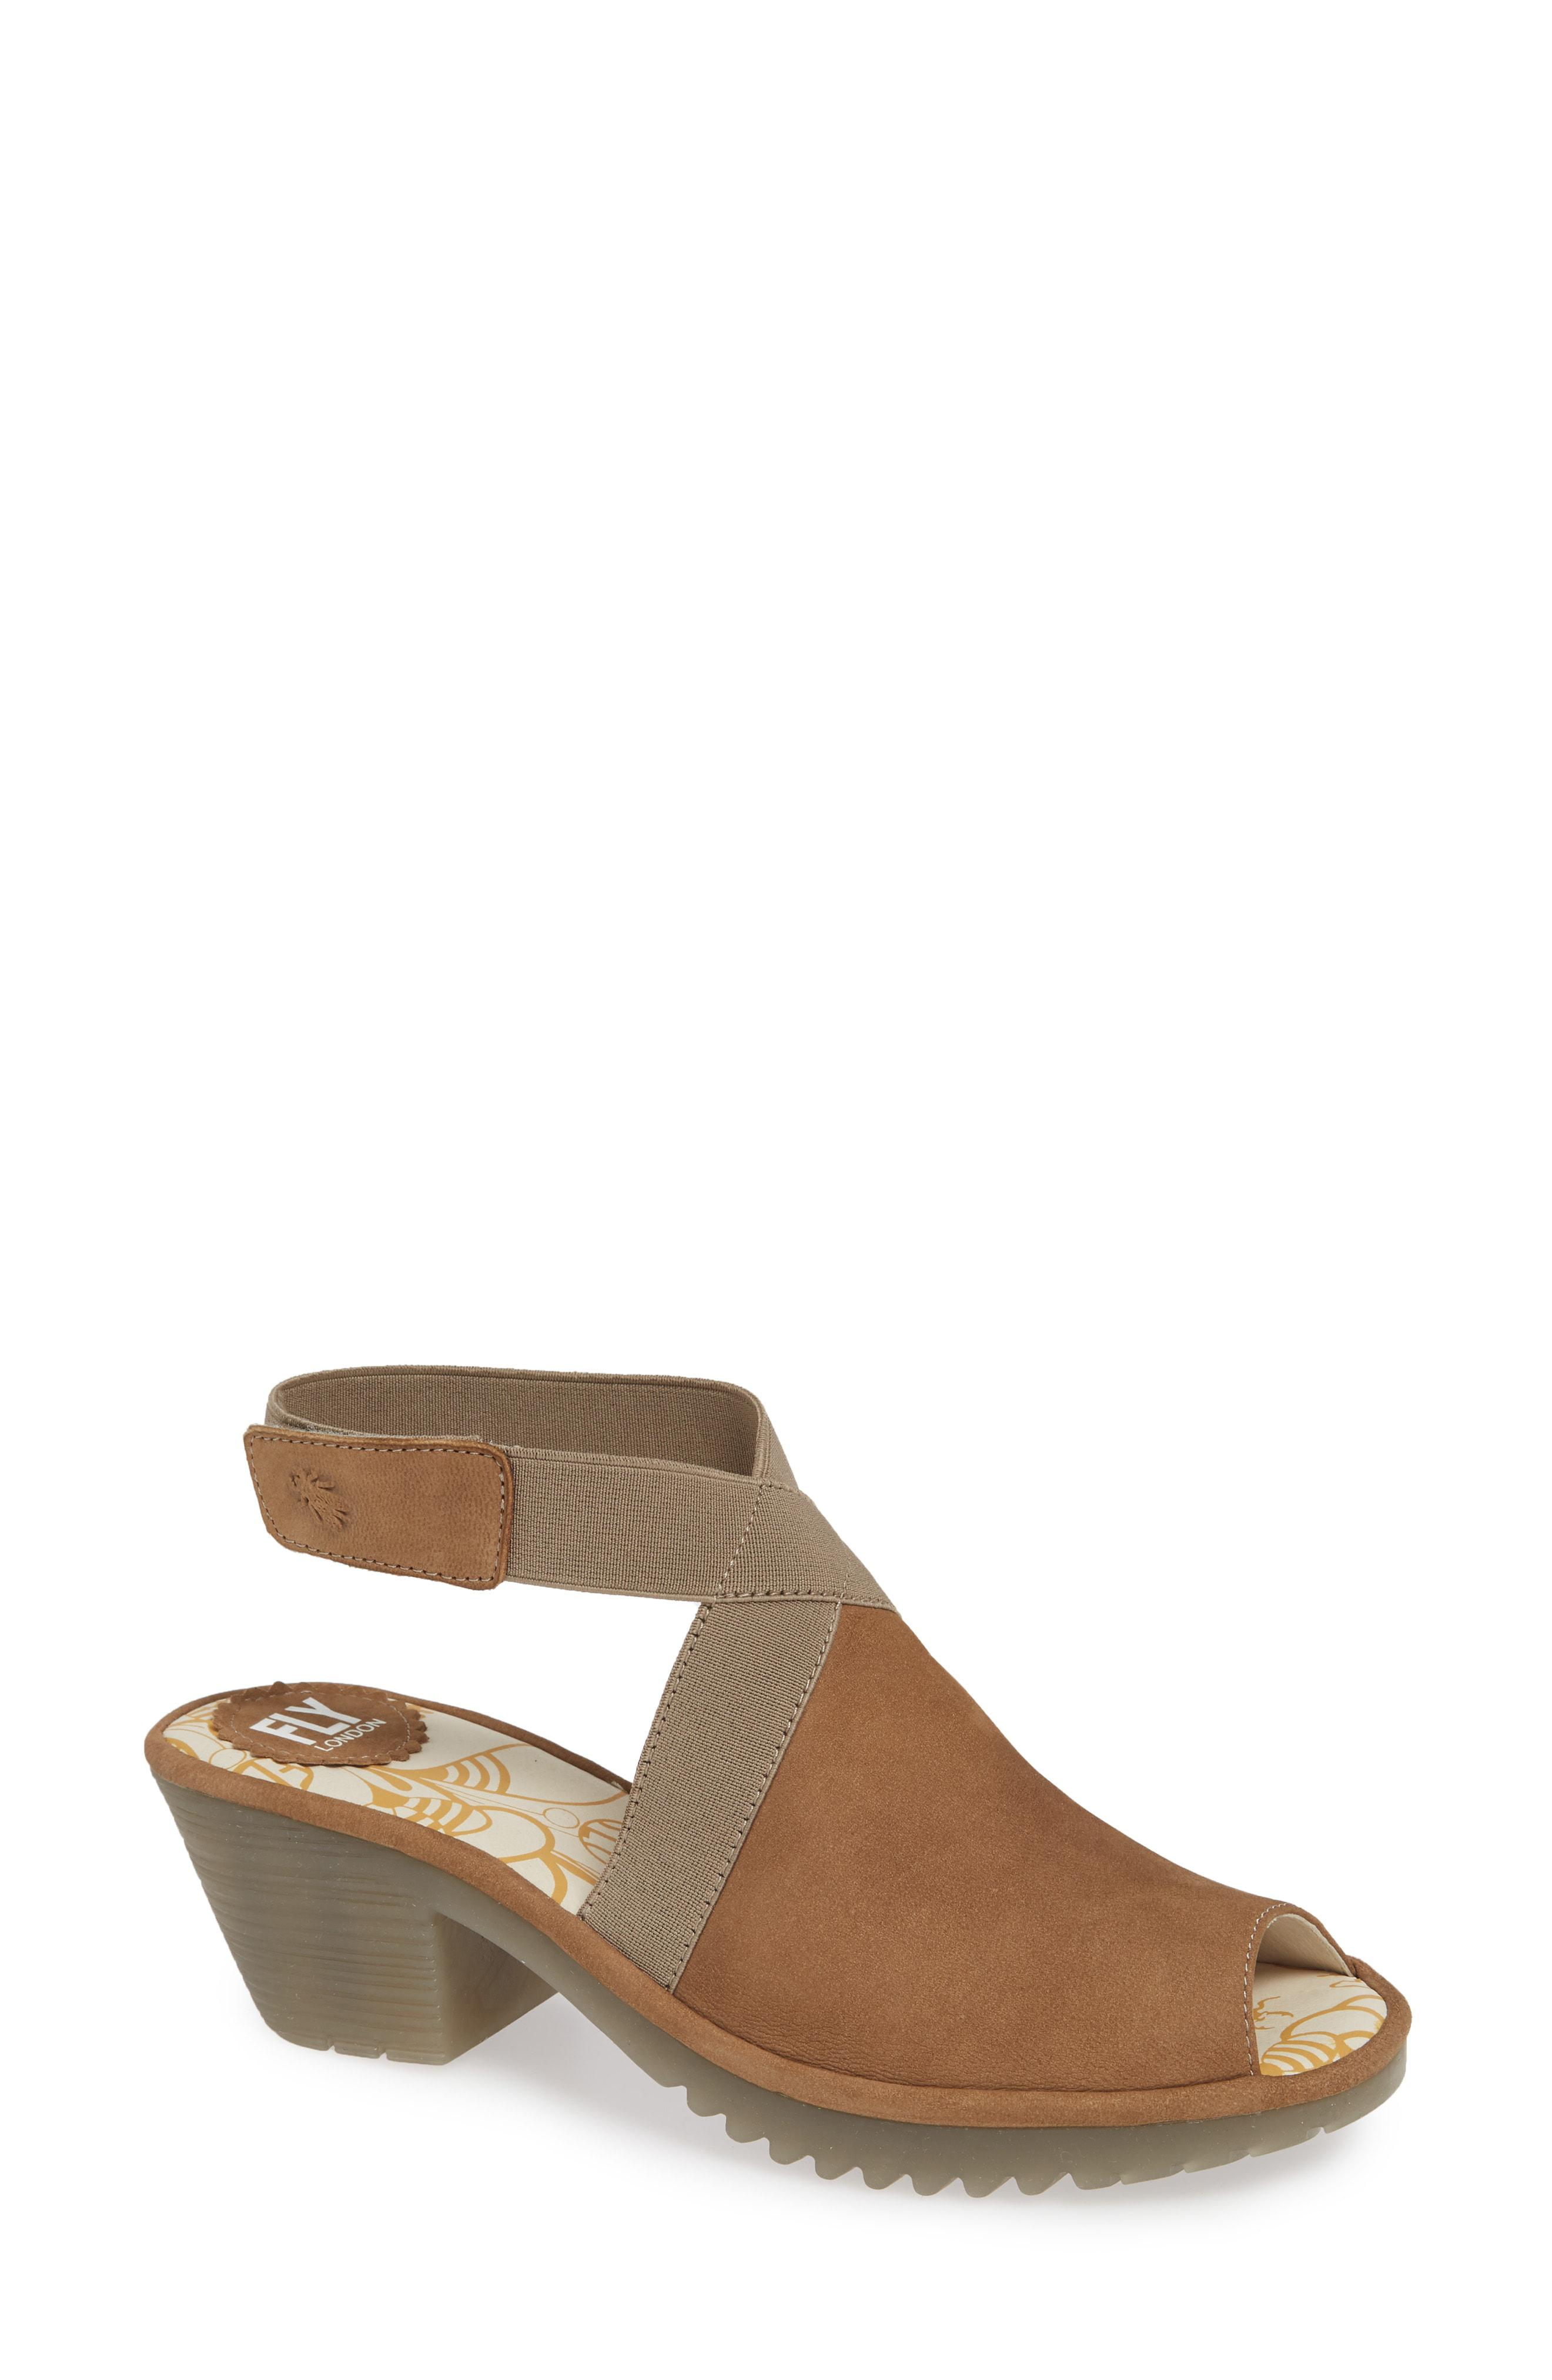 c8c2a74a8e6eb Fly London. Women's Wato Sandal